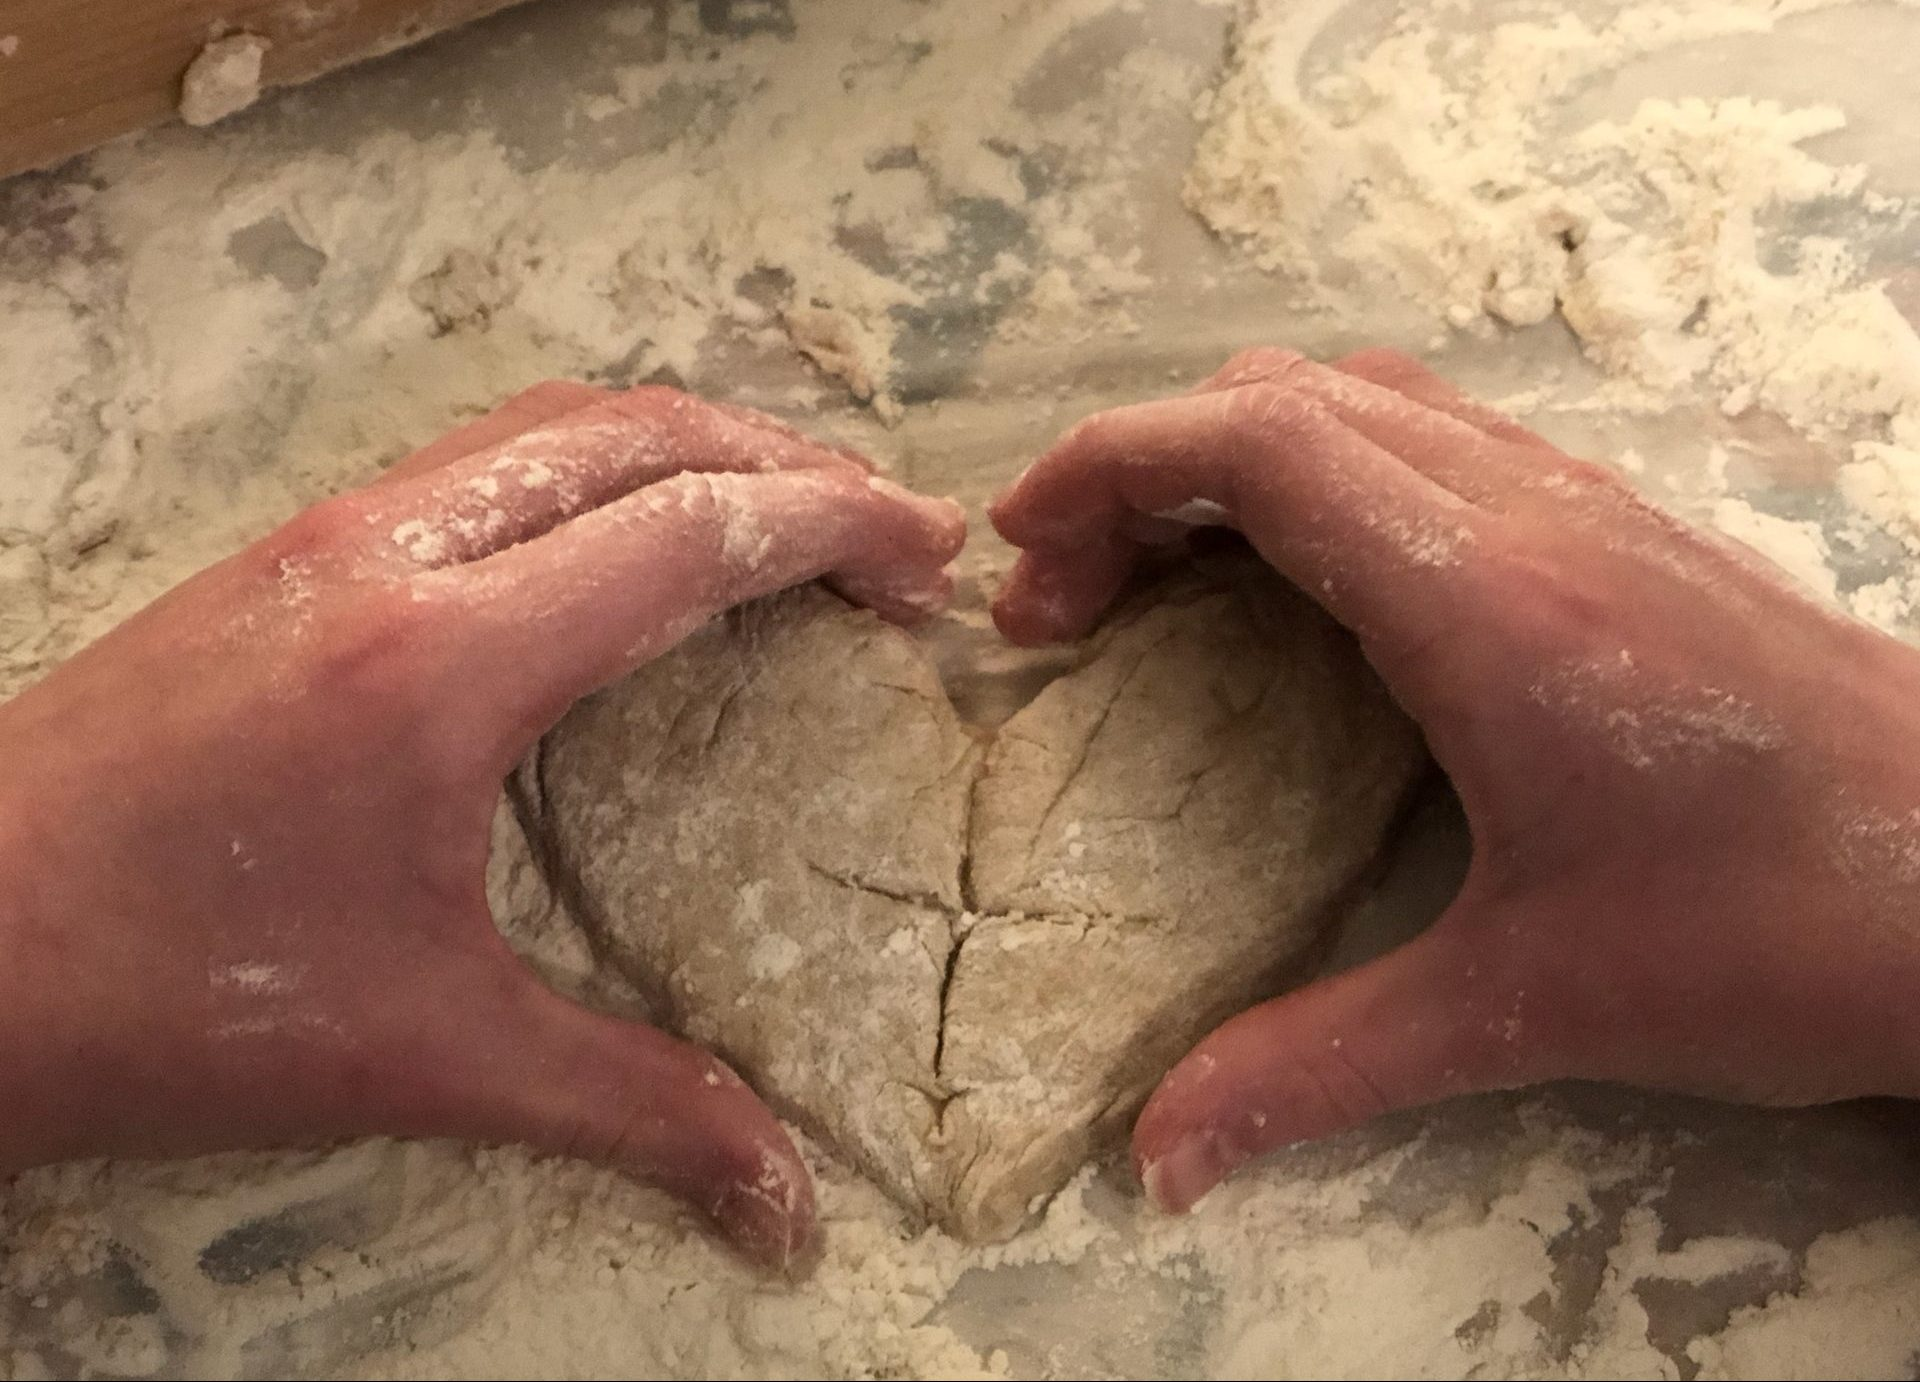 Hands in a heart shape wrapped aroung a heart shaped losf of bread with a cross on it